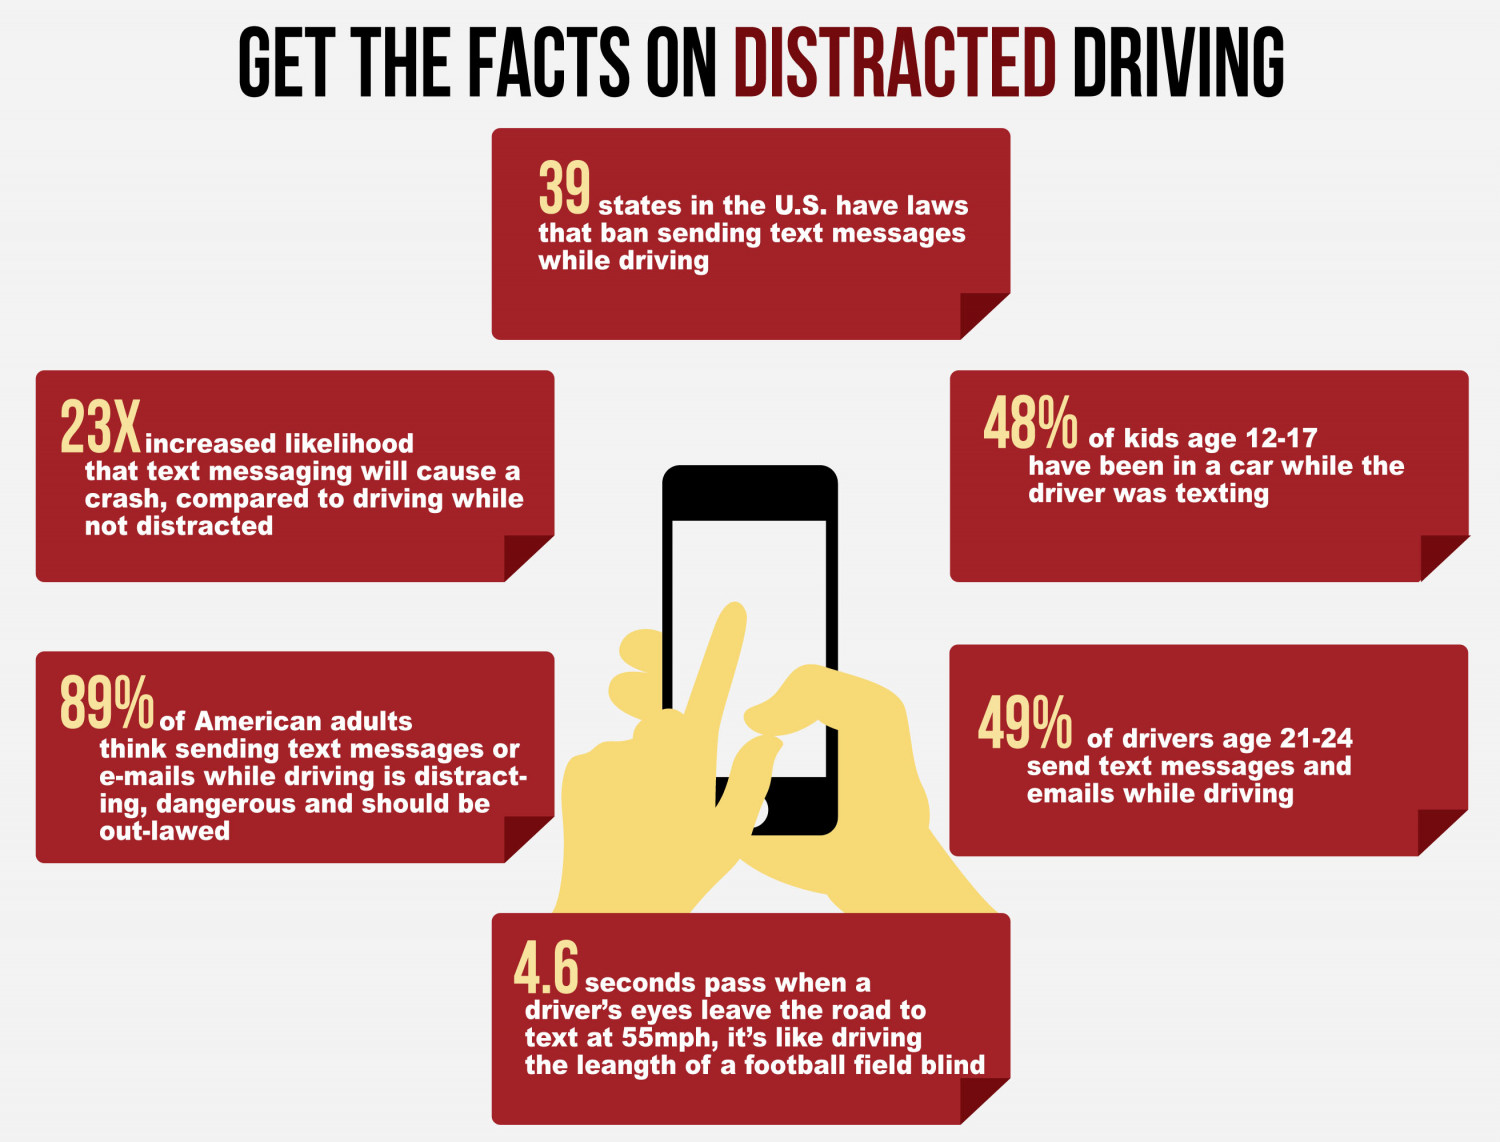 Get The Facts on Distracted Driving Infographic